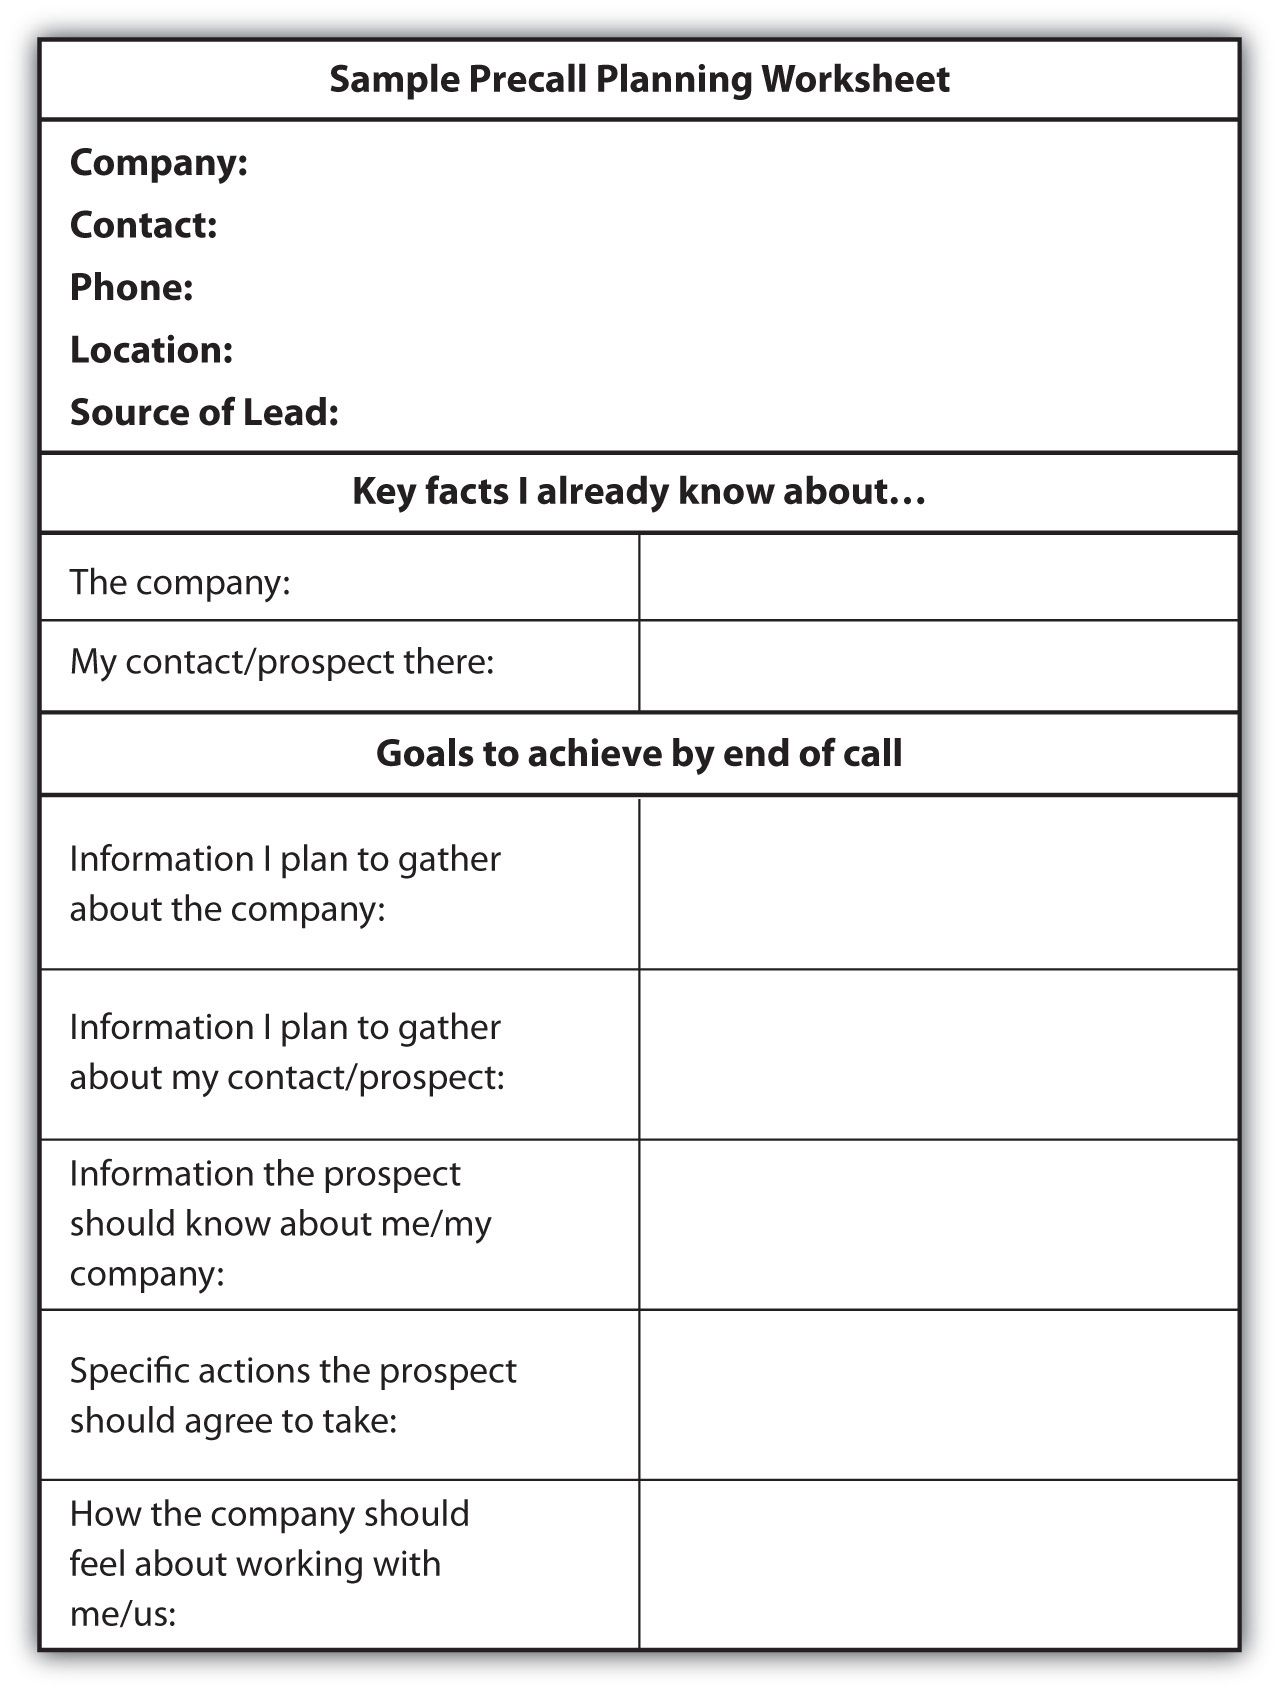 Worksheets Army Body Fat Worksheet sales call planning worksheet informative topics on this site site